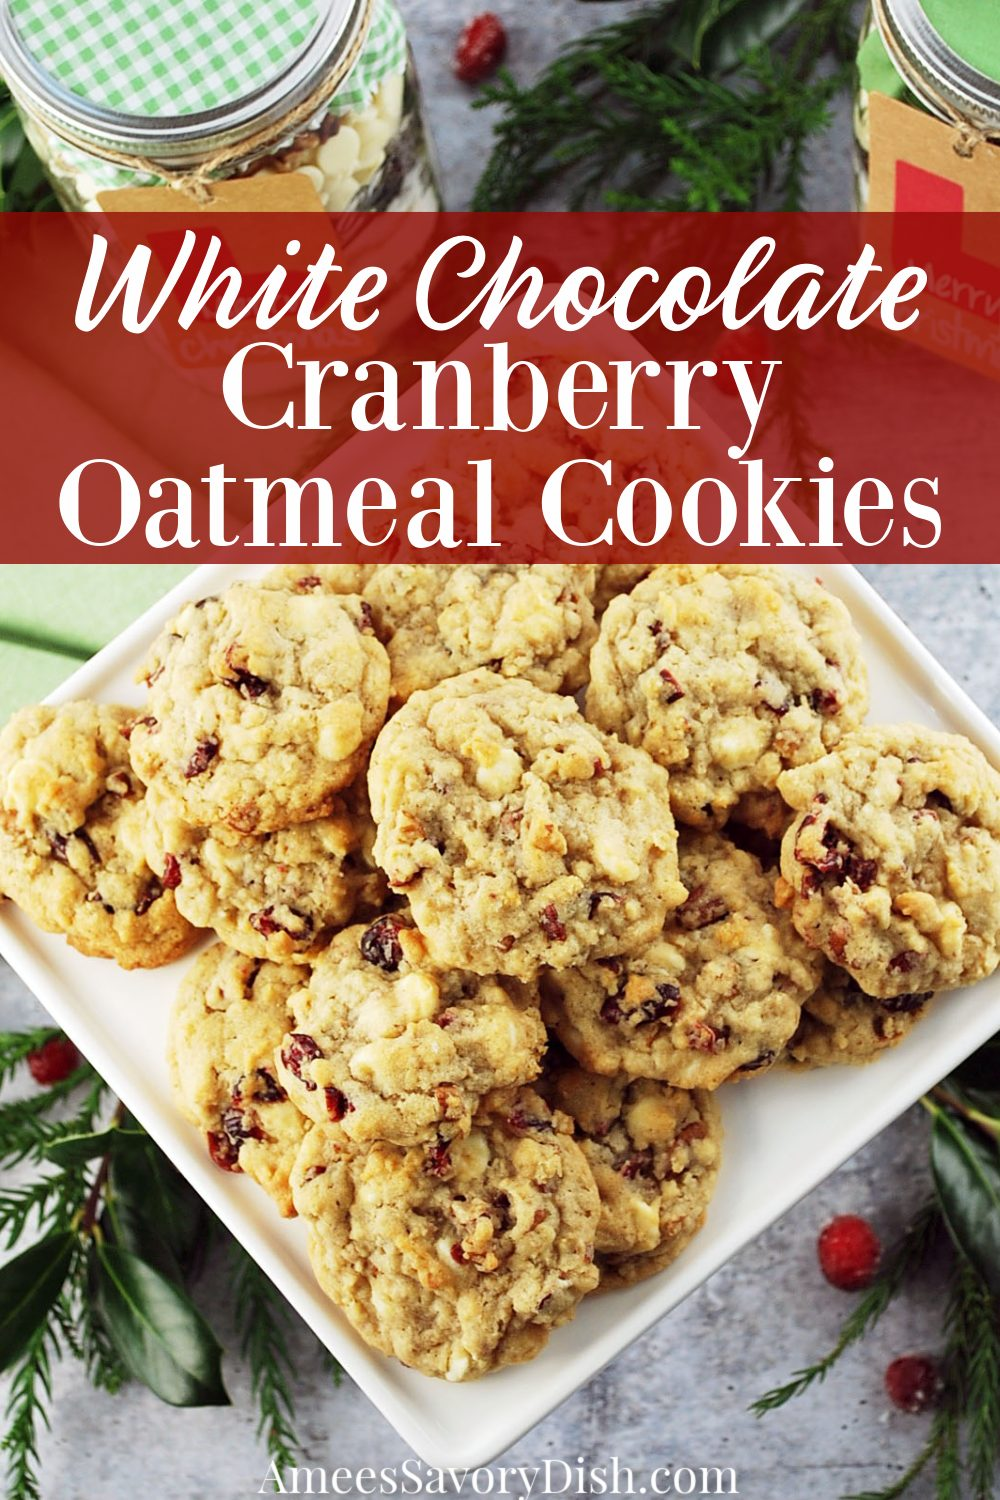 White Chocolate Cranberry Oatmeal Cookies (aka Cranberry Hootycreeks) make a festive holiday cookie recipe made with rolled oats, white chocolate chips, dried cranberries, and pecans. #jarcookierecipe #whitechocolatecookies #chrismtascookies #masonjarcookies #cookierecipe via @Ameessavorydish